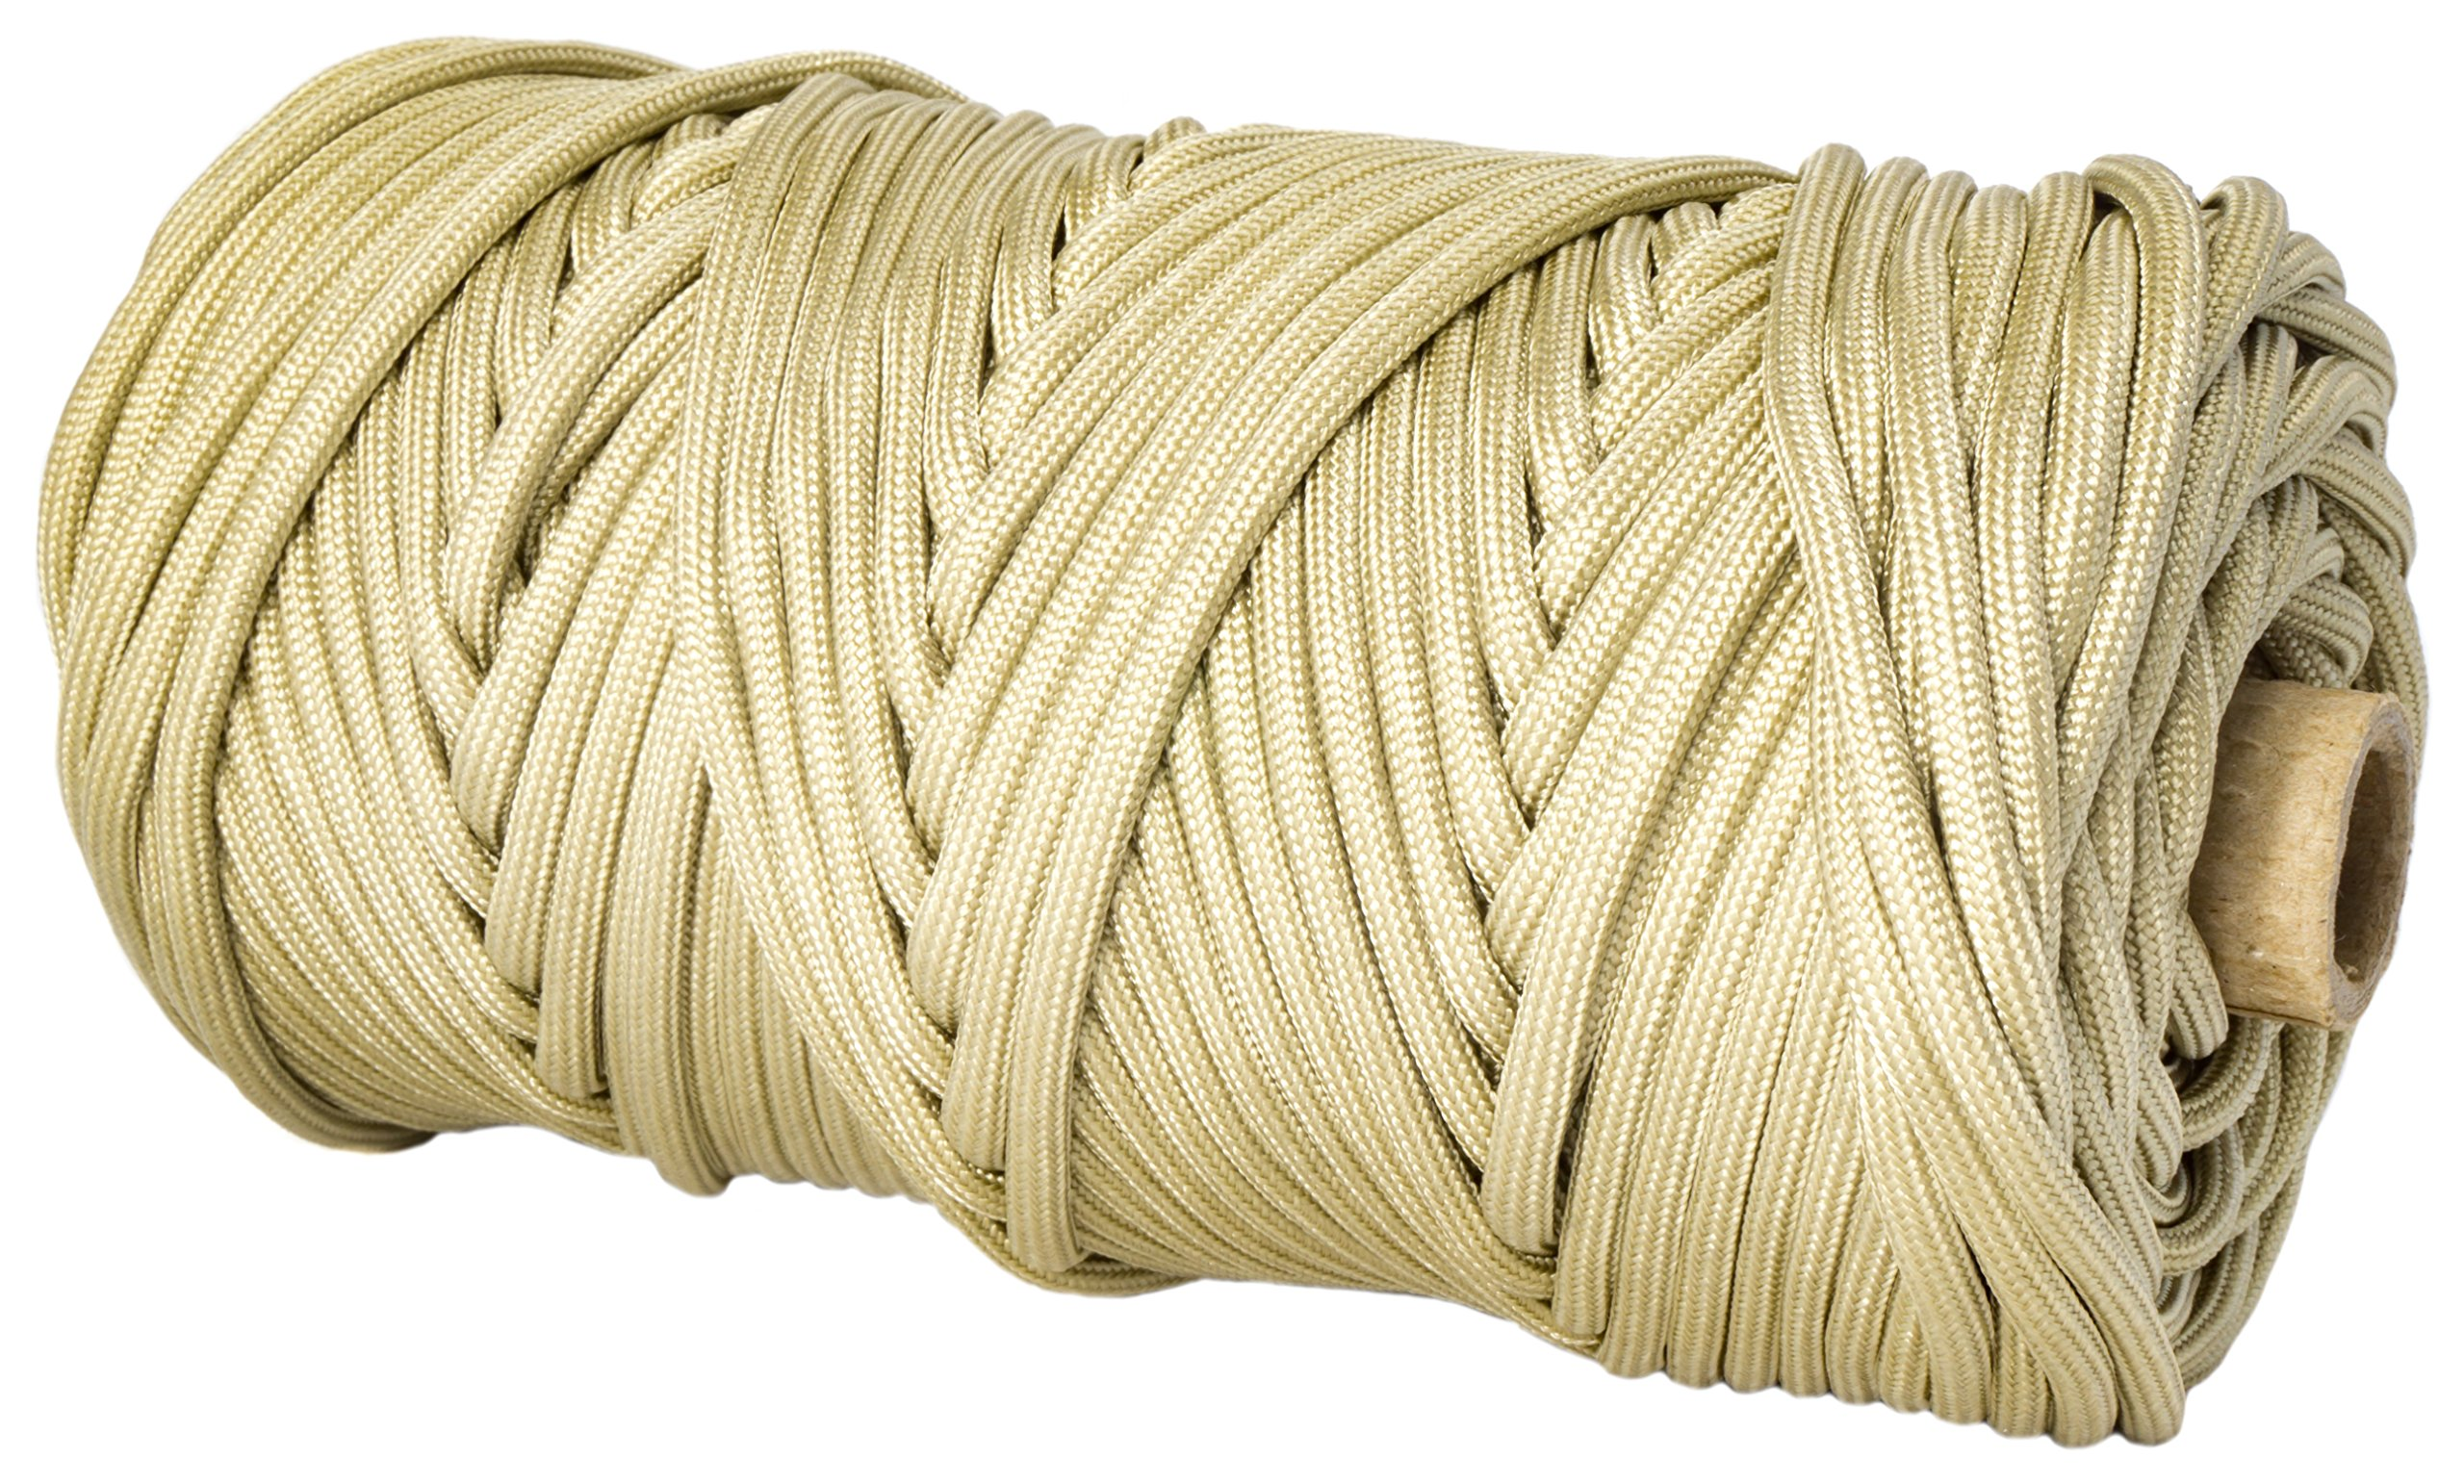 TOUGH-GRID 750lb Buckskin (Desert Sand) Paracord/Parachute Cord - Genuine Mil Spec Type IV 750lb Paracord Used by The US Military (MIl-C-5040-H) - 100% Nylon - Made in The USA. 200Ft. - Buckskin by TOUGH-GRID (Image #2)